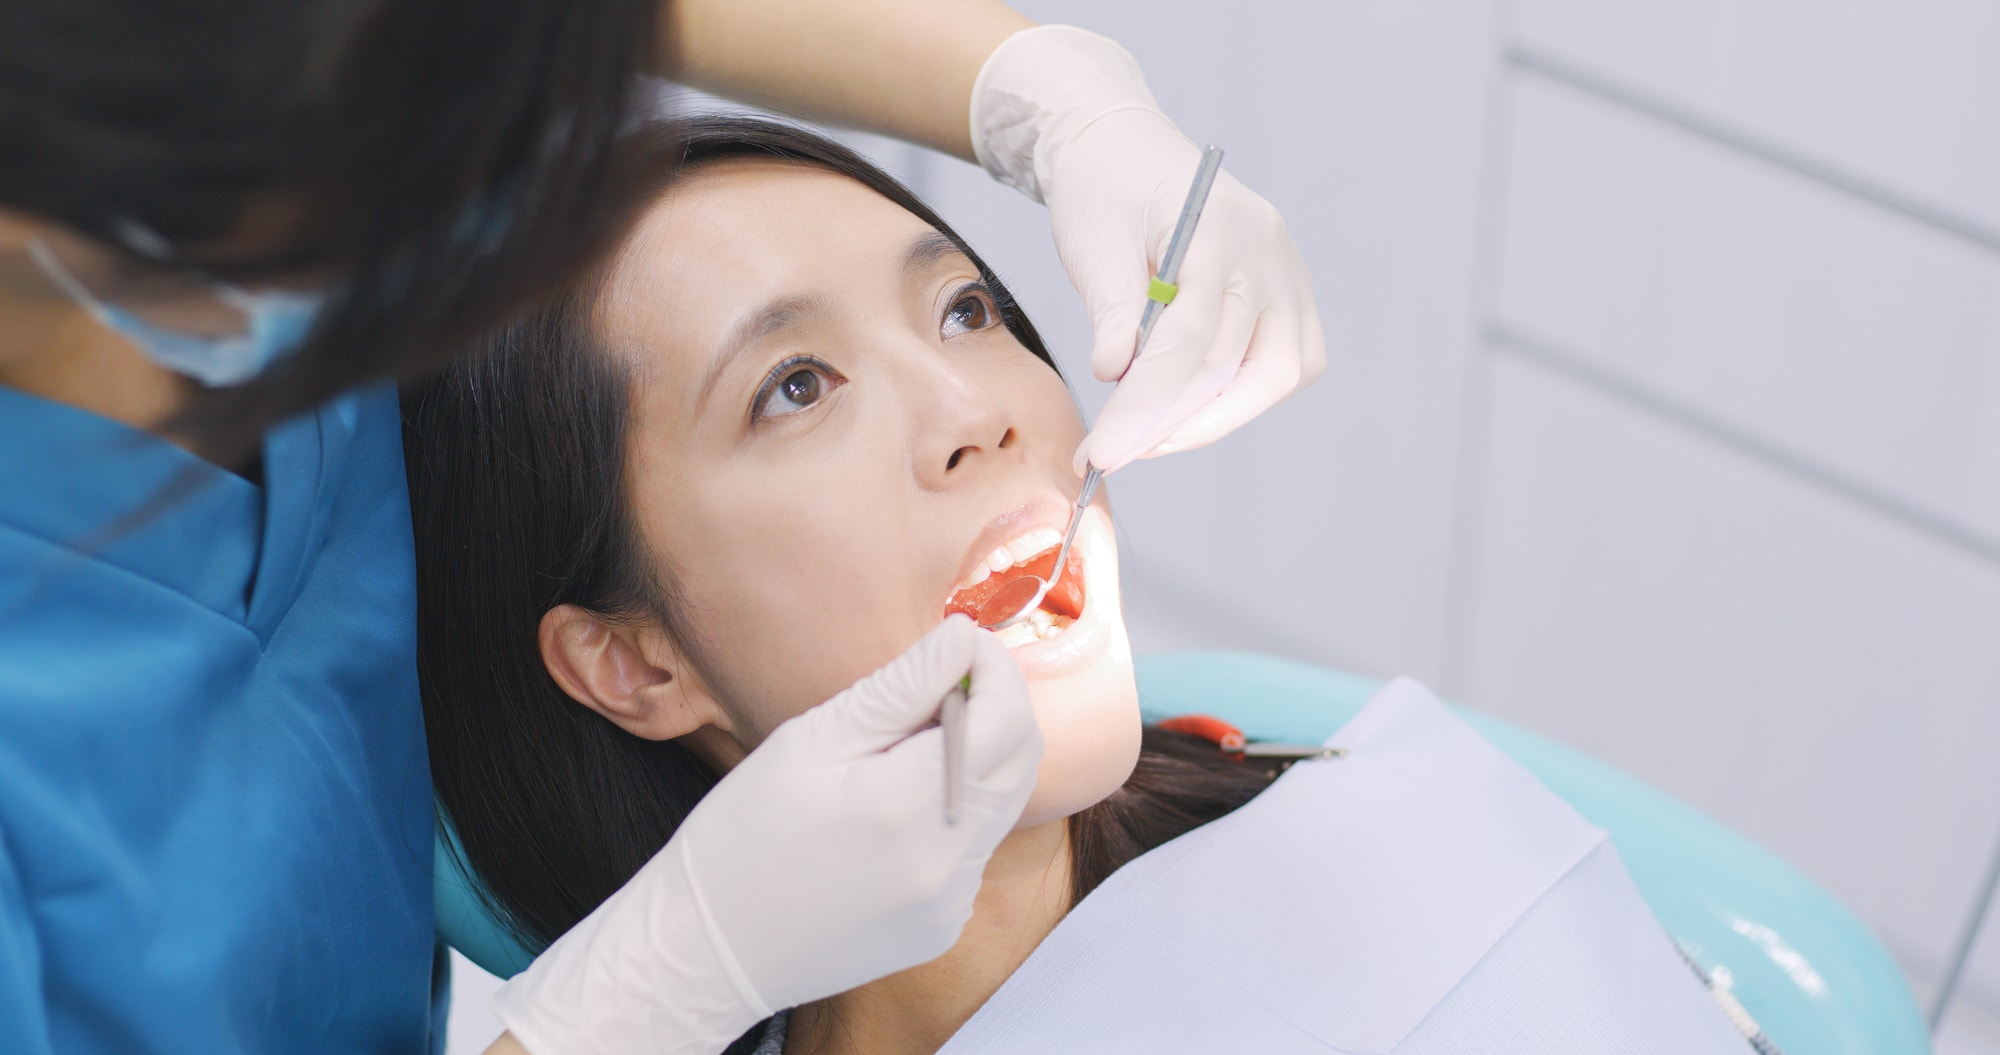 Dentist examining a patient teeth in the dentist - 5 wise facts about wisdom teeth